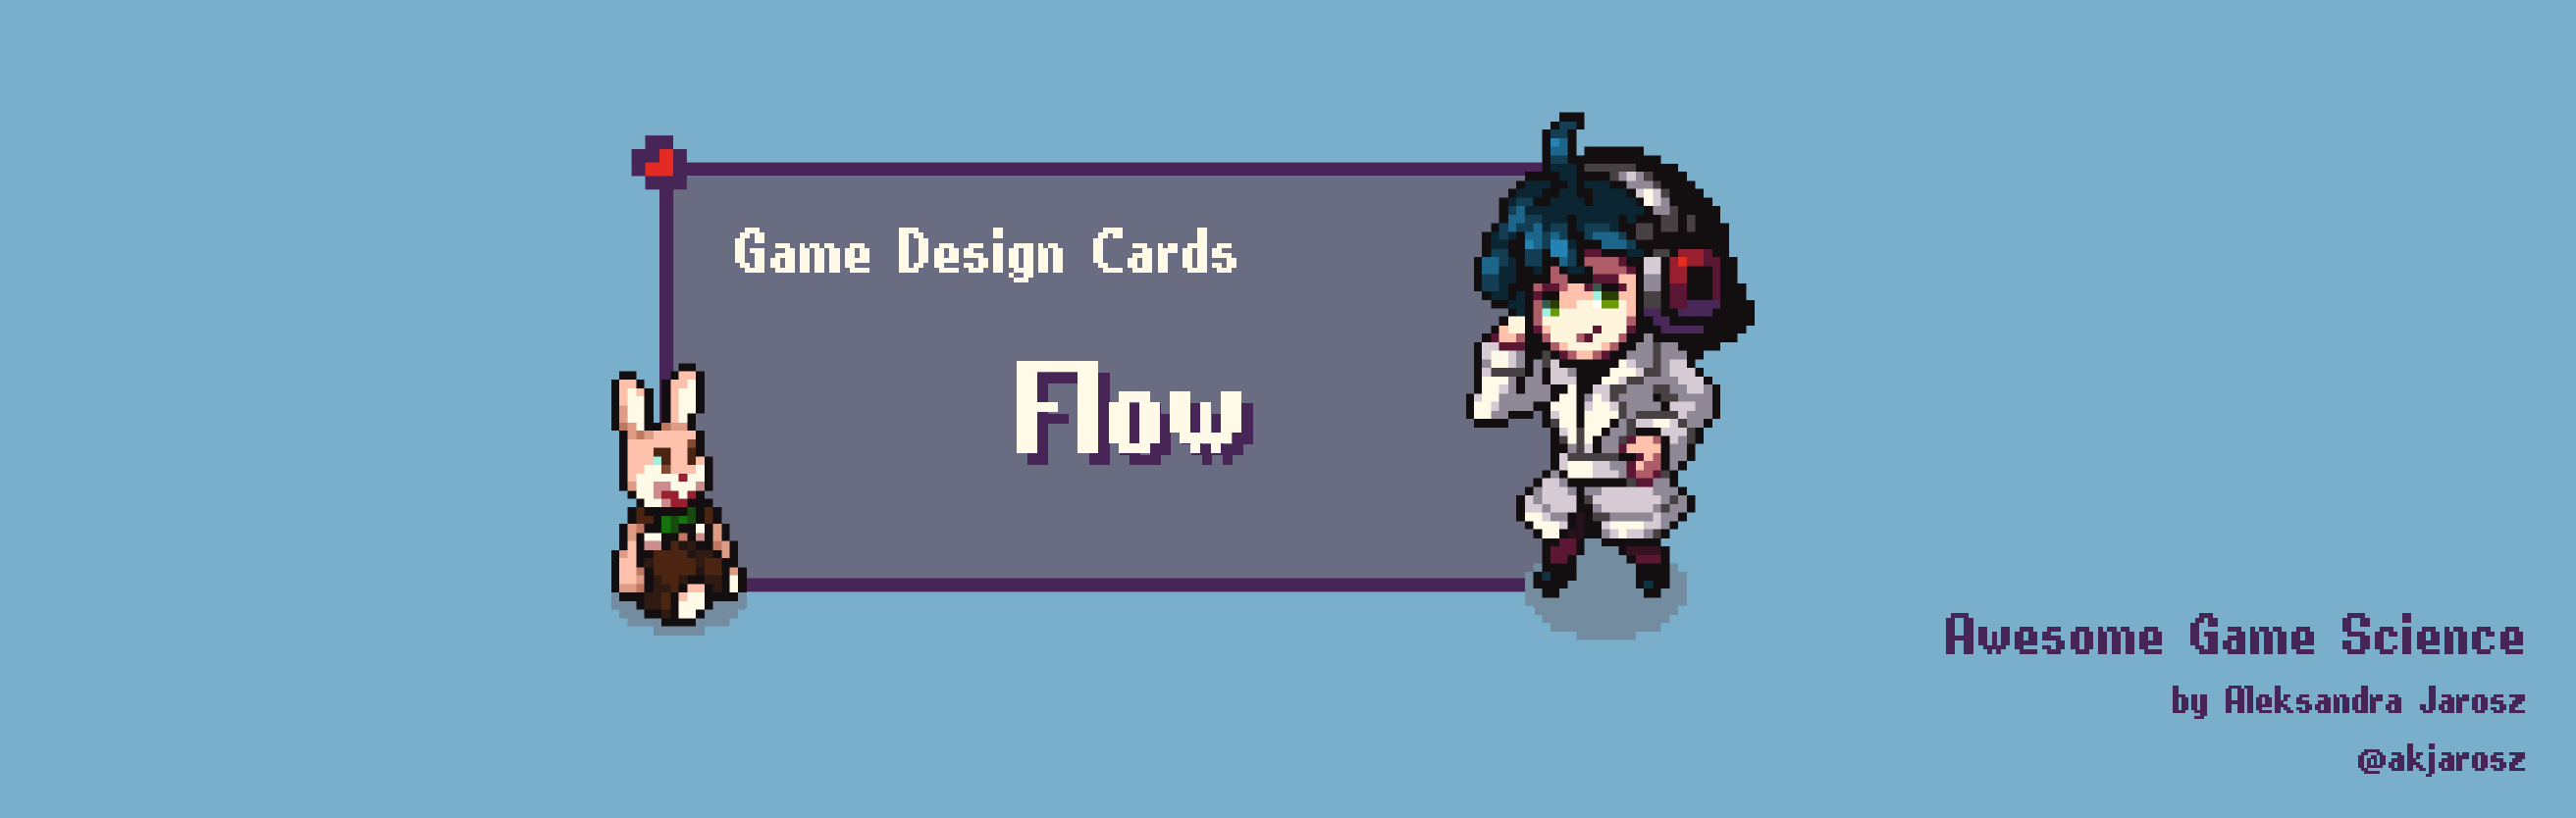 Awesome Game Science Cards - Flow